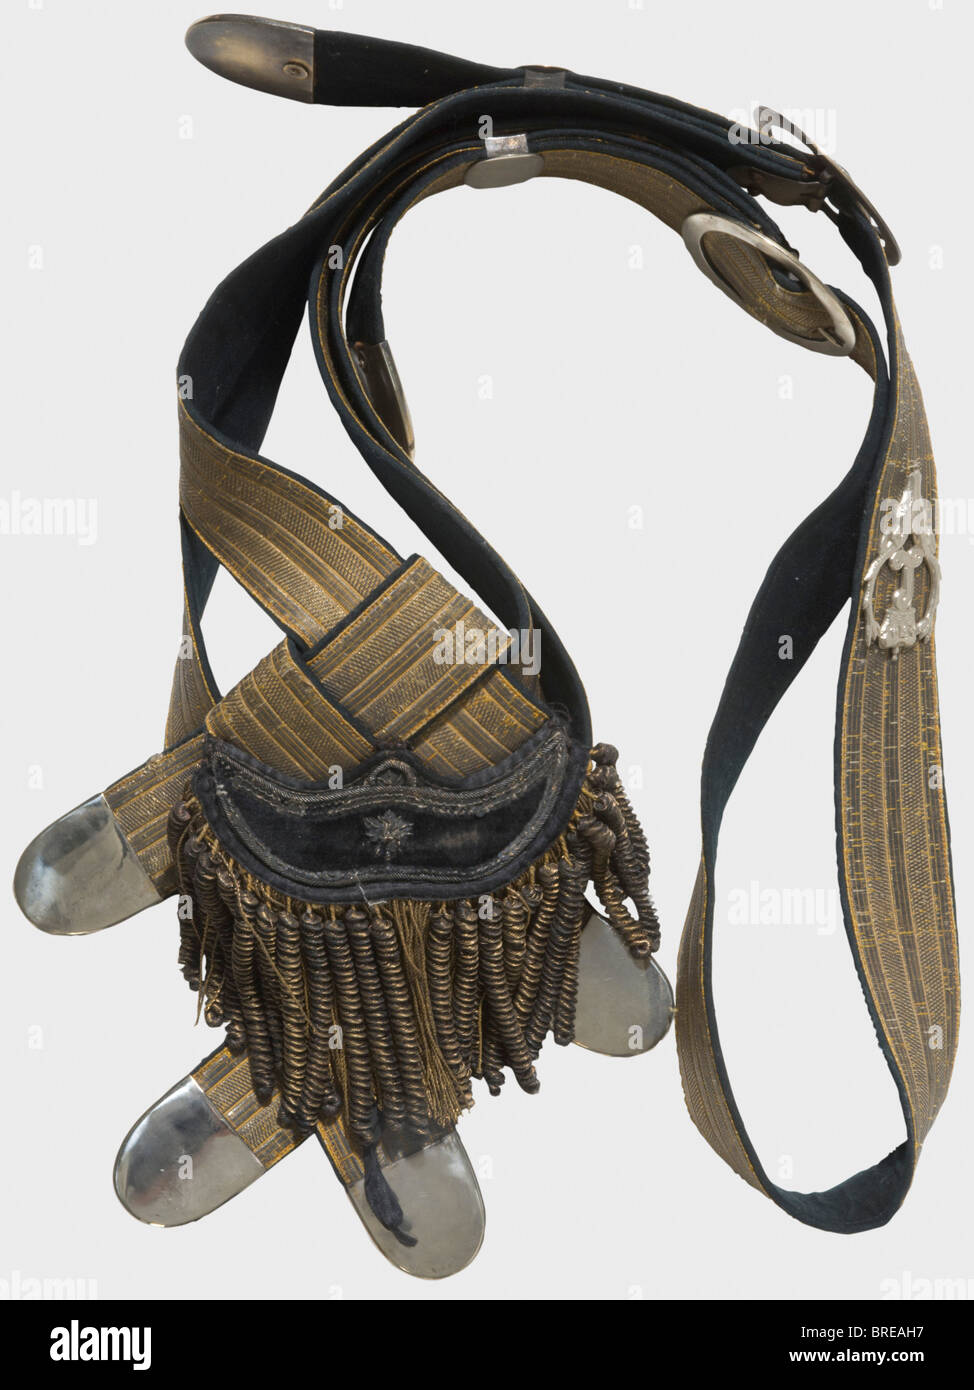 Two hunting bandoliers, Hessian and Count Stollberg-Wernigerode, 19th century, respectively Both velvet-backed bandoliers - Stock Image